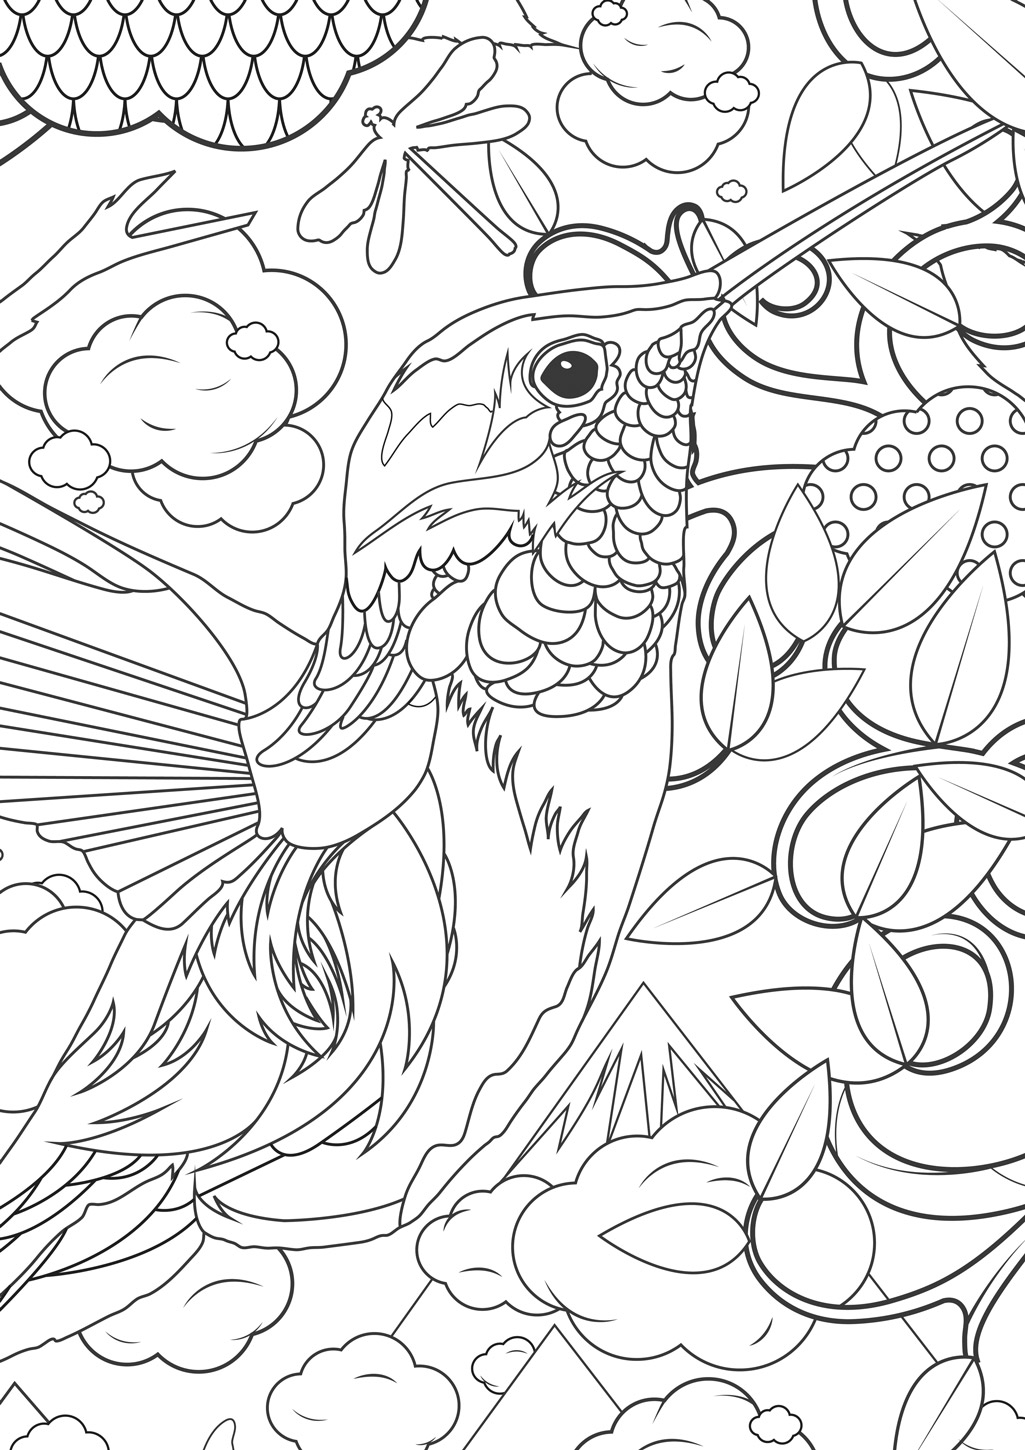 1025x1450 Download Printable Coloring Pages For Older Kids And Free Qqa Me